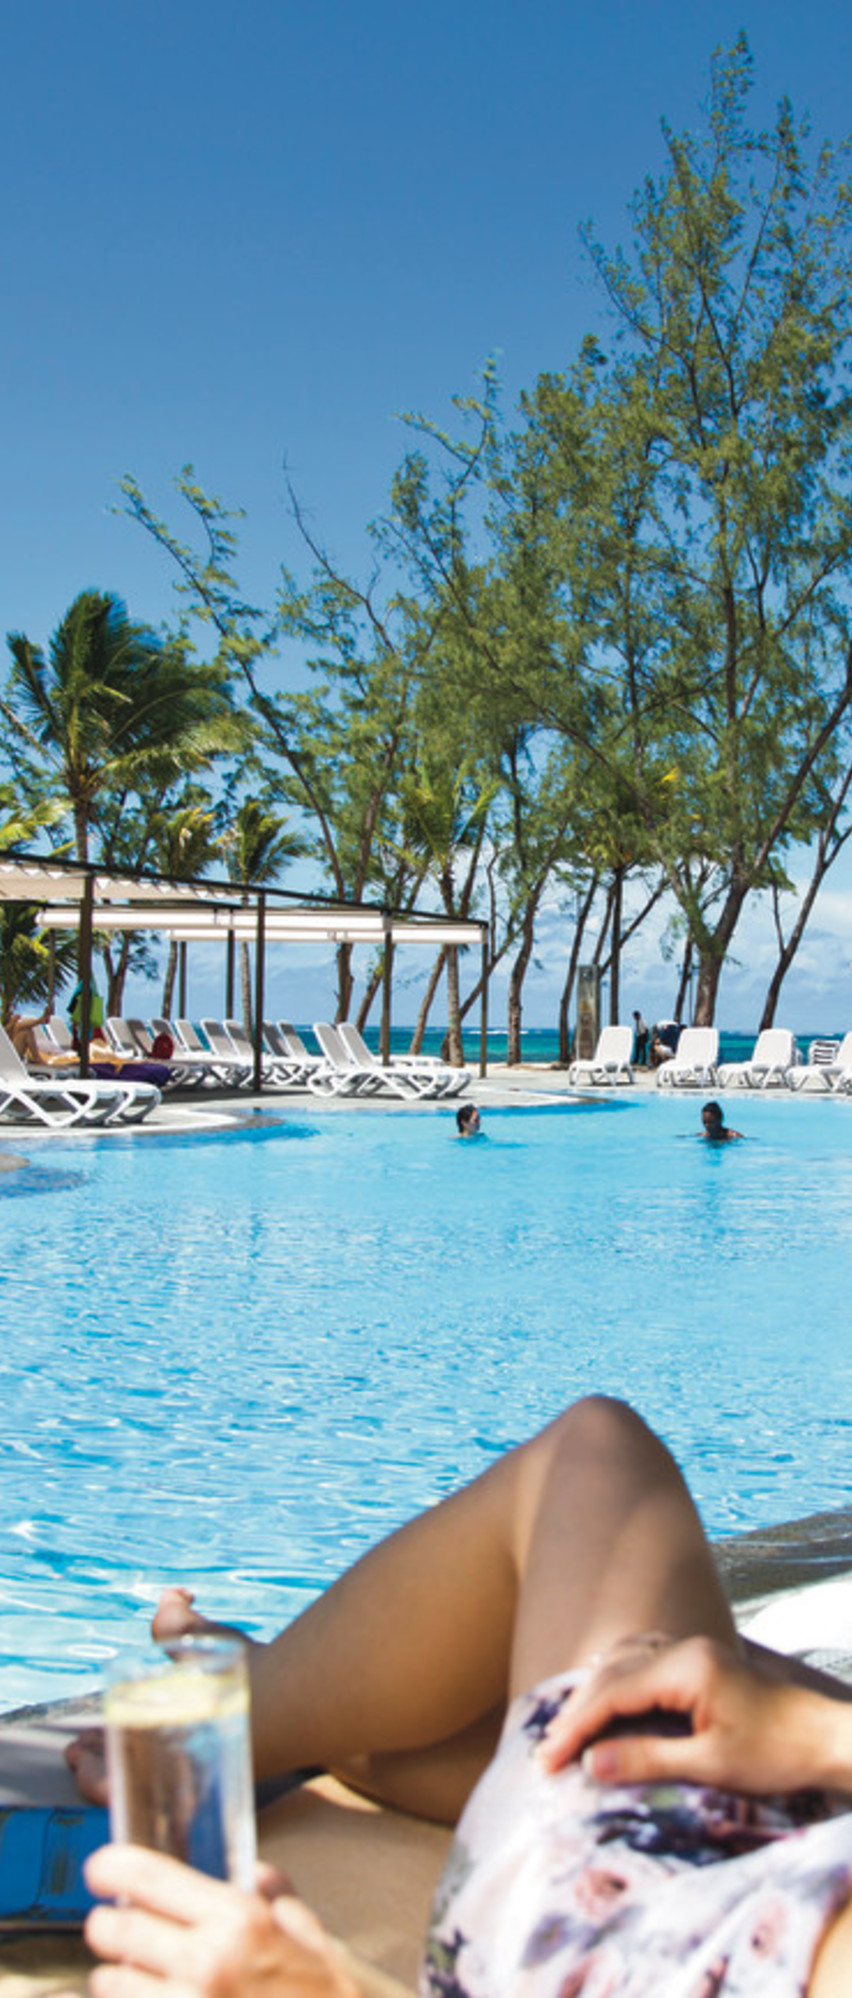 Relaxing by the pool with a cool drink and sea views in Mauritius ...